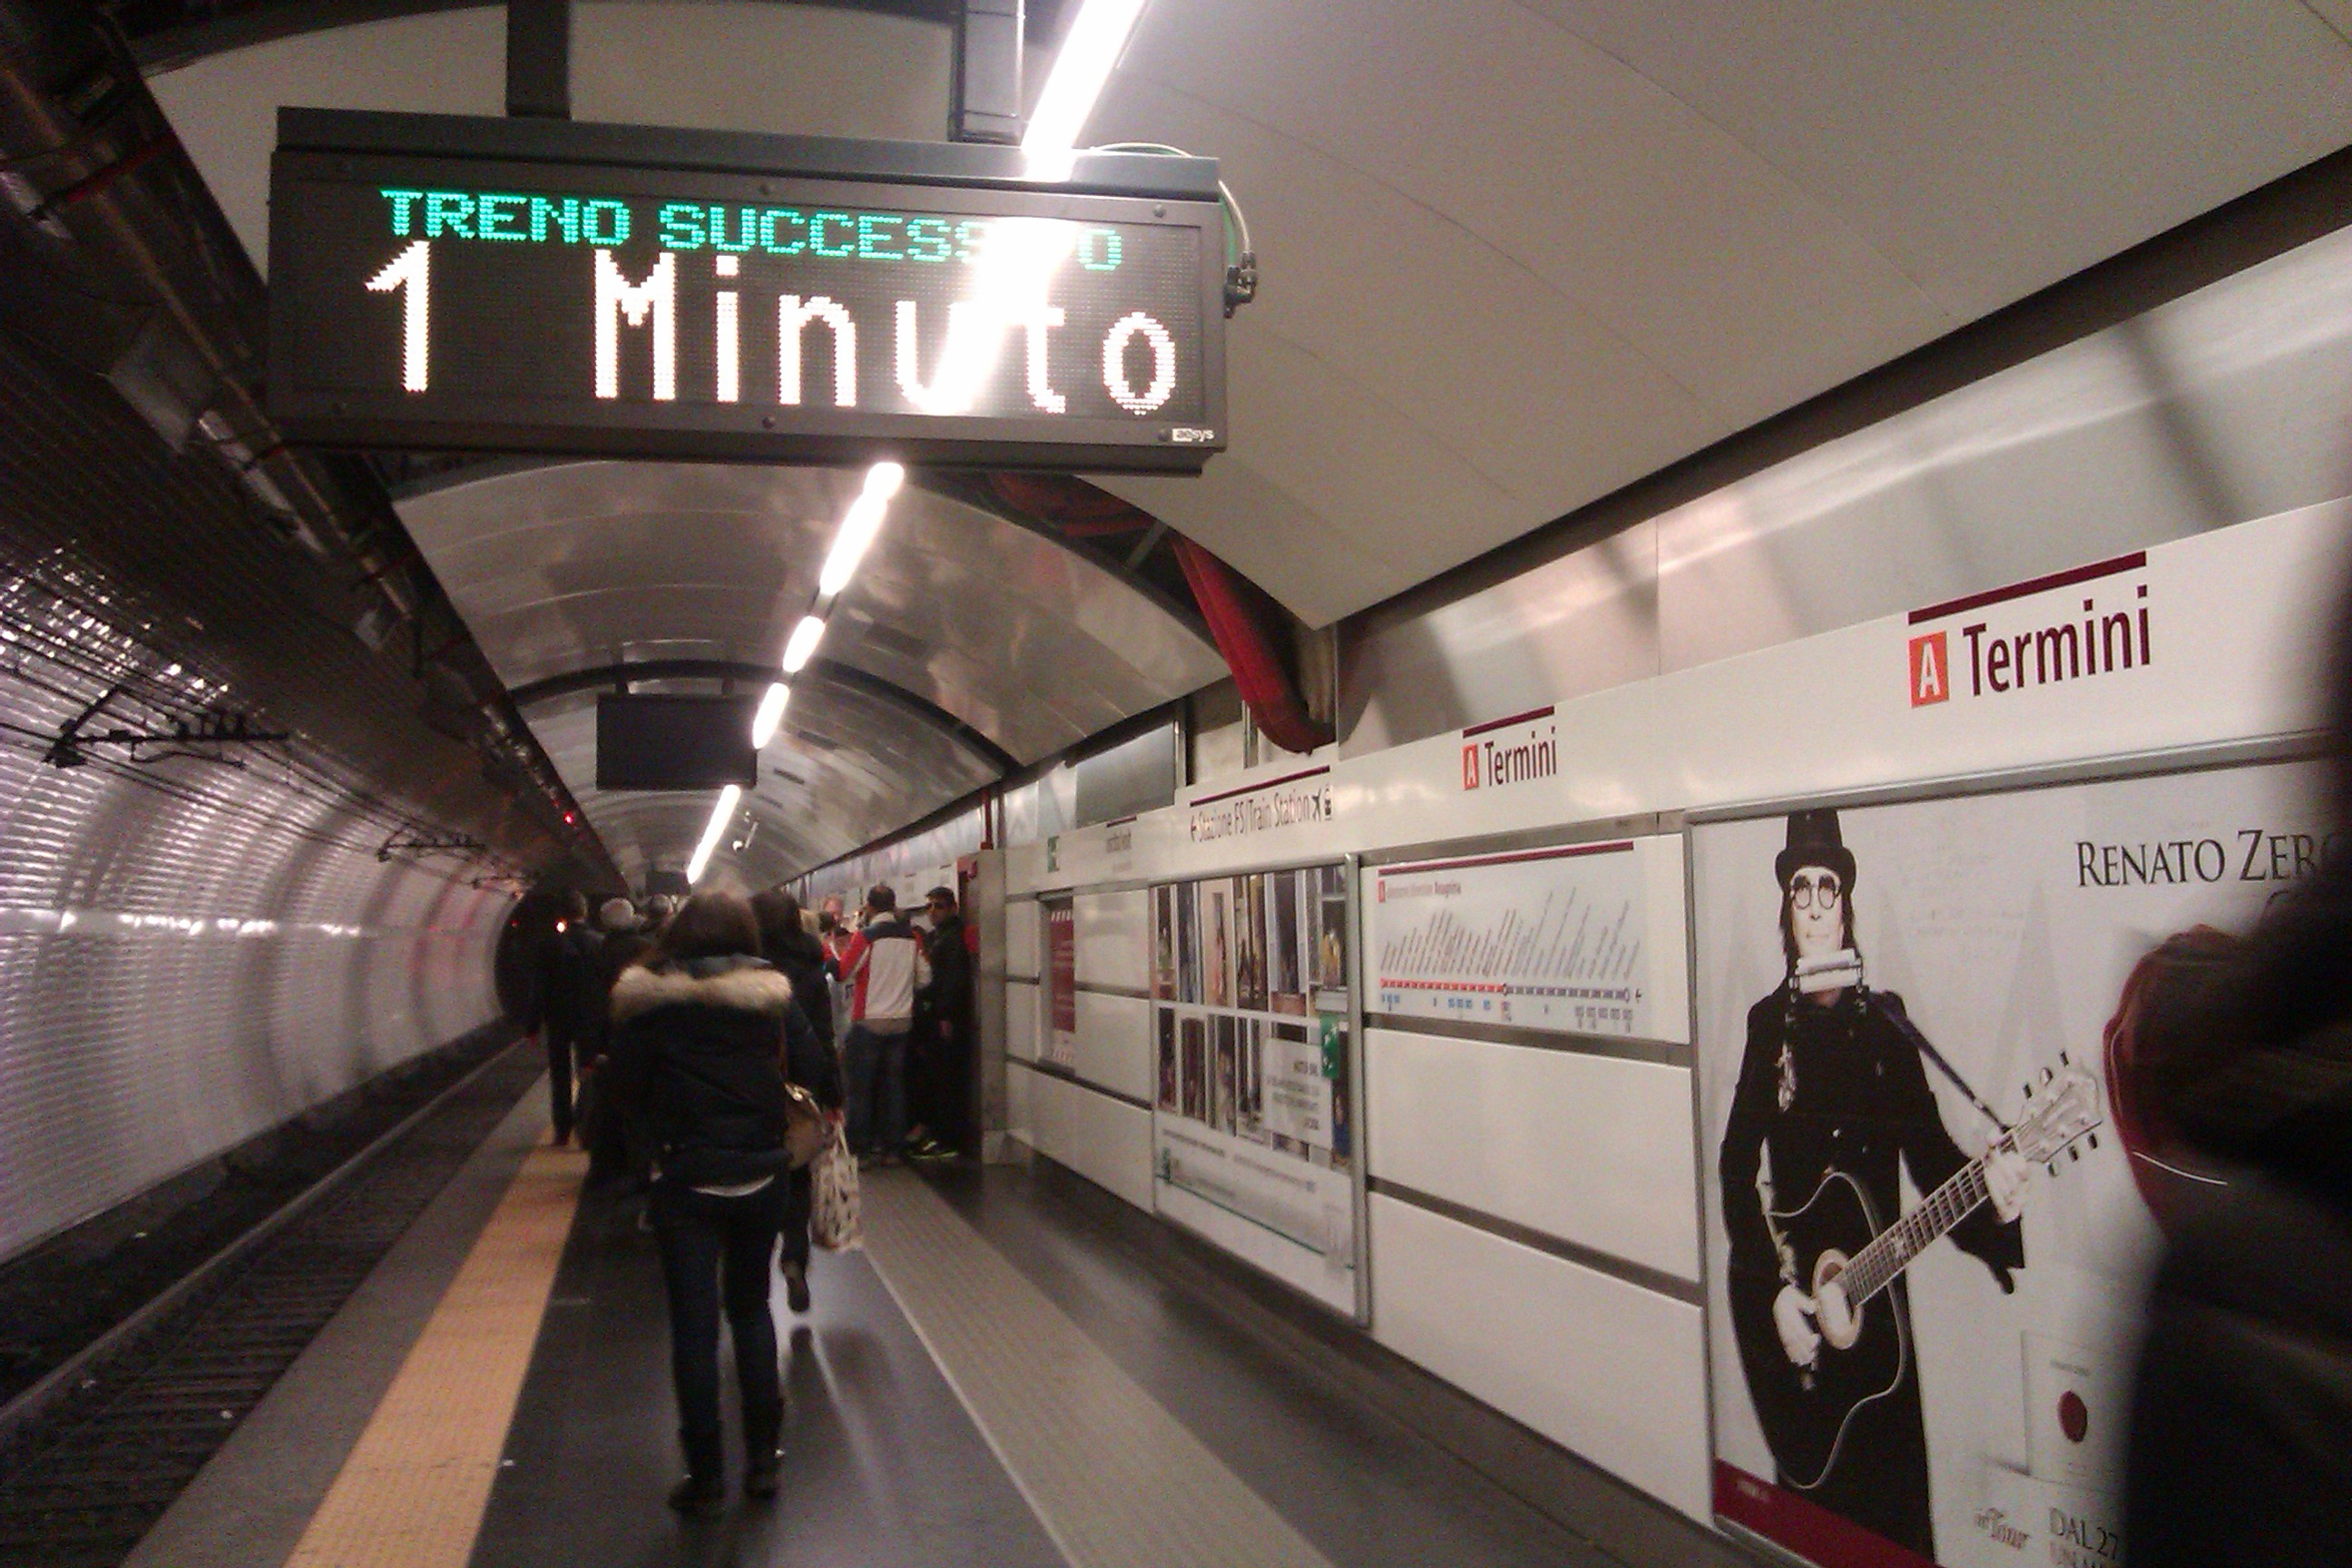 Termini, Wikipedia commons